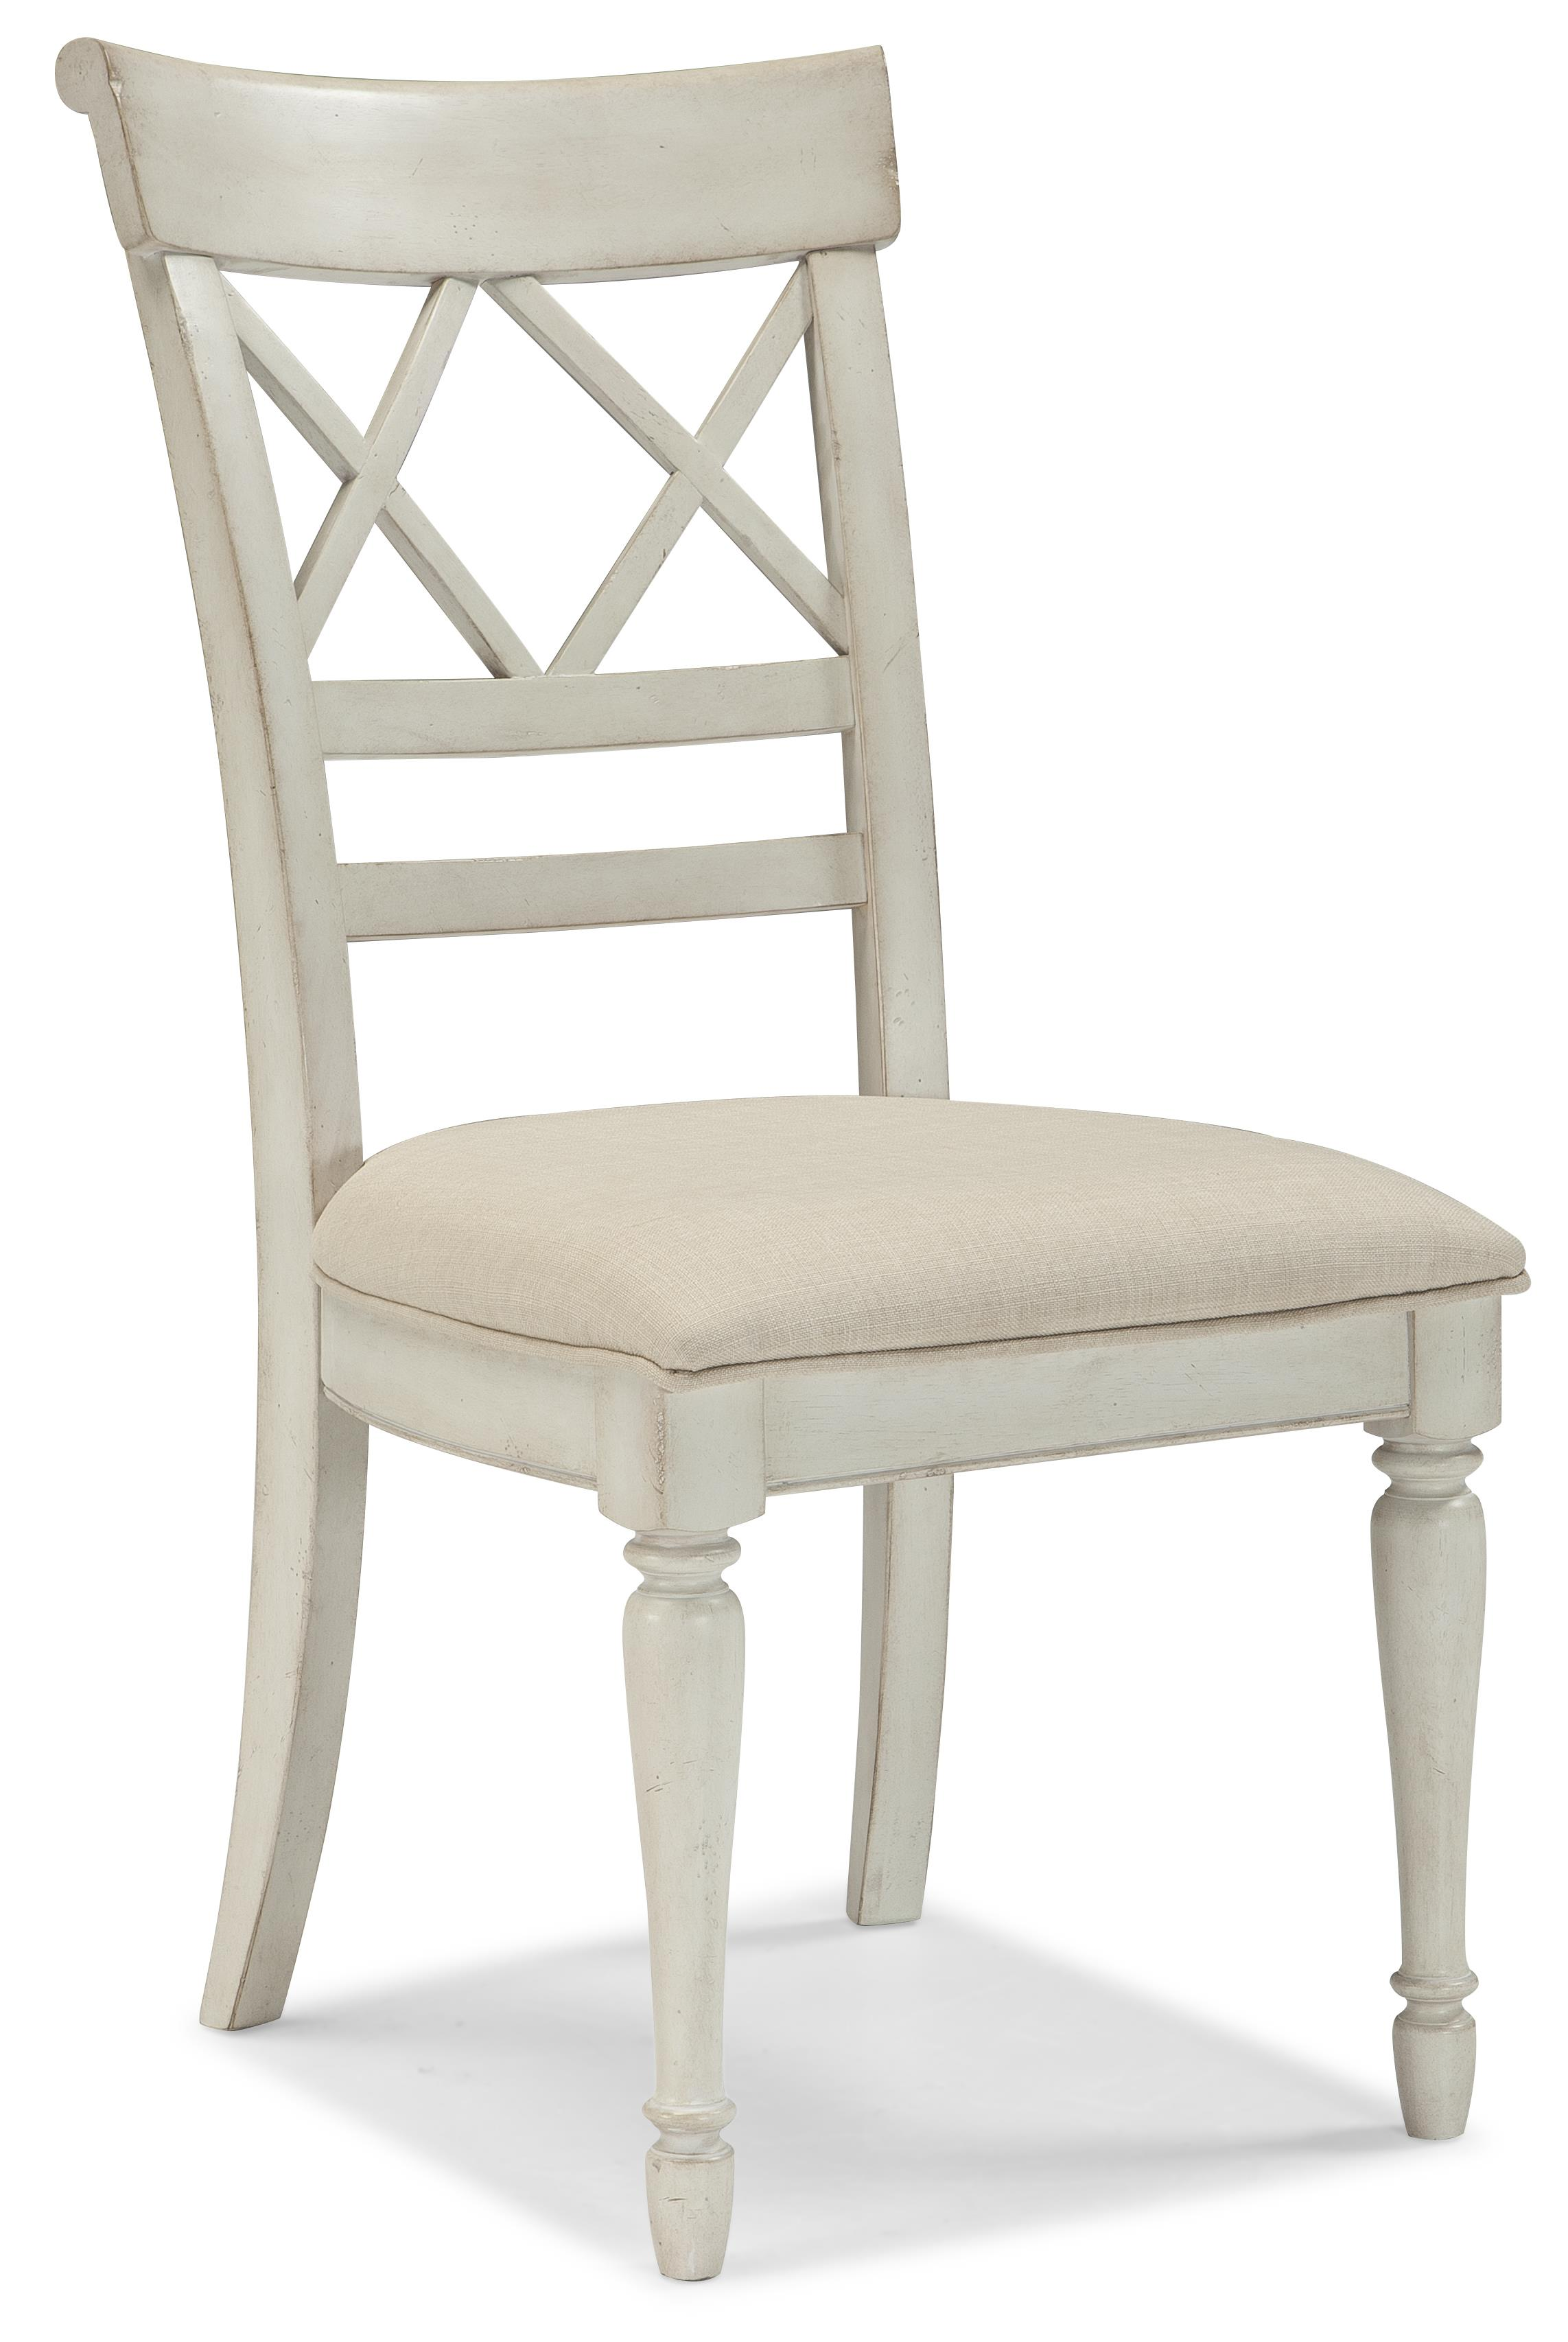 Cresent Fine Furniture Cottage Dining Chair - Item Number: 201-158